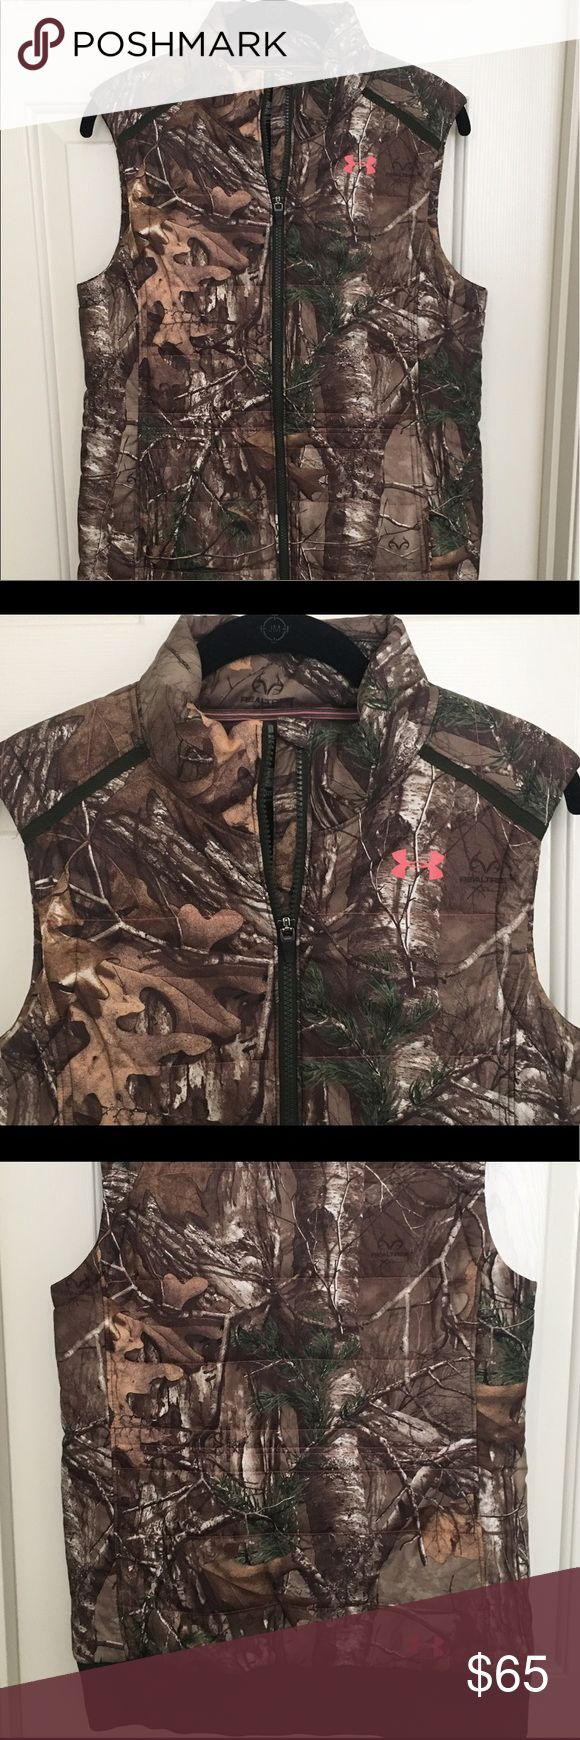 Under Armour Real Tree Vest Under Armour Real Tree camo vest. Absolutely love this vest, but after moving to a warmer place, it doesn't get any use. Longer cut, so it fits very well. It can be dressed up or dressed down. Under Armour Jackets & Coats Vests